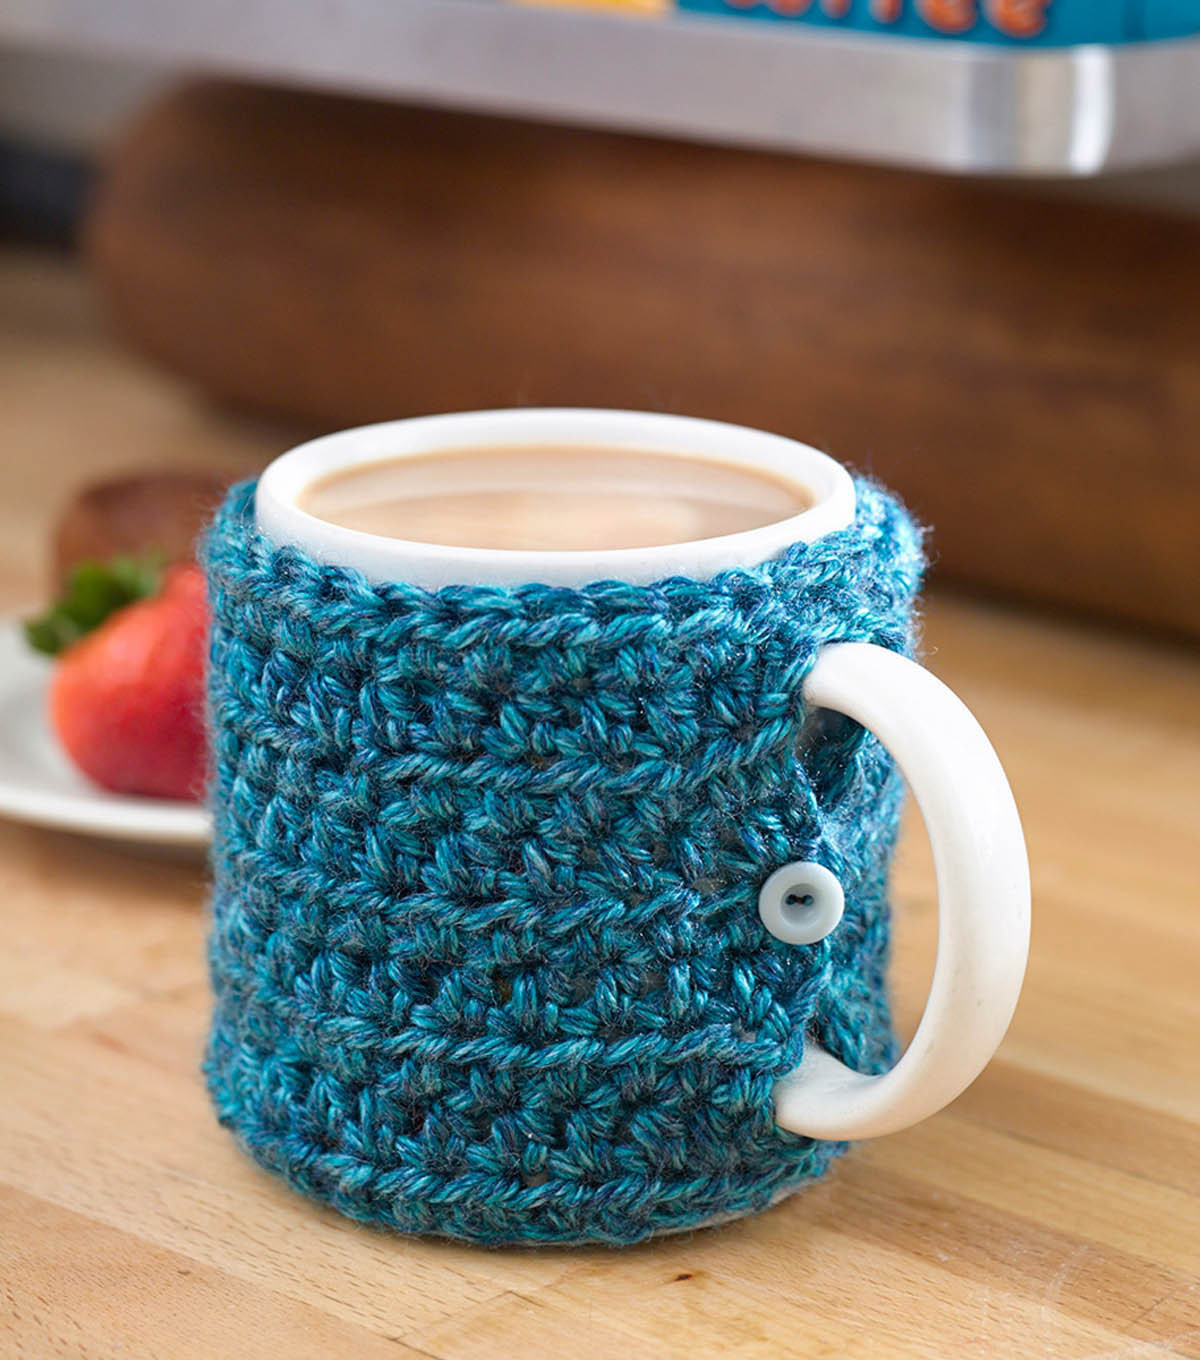 Crochet Coffee Cup Cozy Best Of Craftdrawer Crafts Free Easy to Crochet Mug Cozy Patterns Of Crochet Coffee Cup Cozy Best Of Craftdrawer Crafts Free Easy to Crochet Mug Cozy Patterns